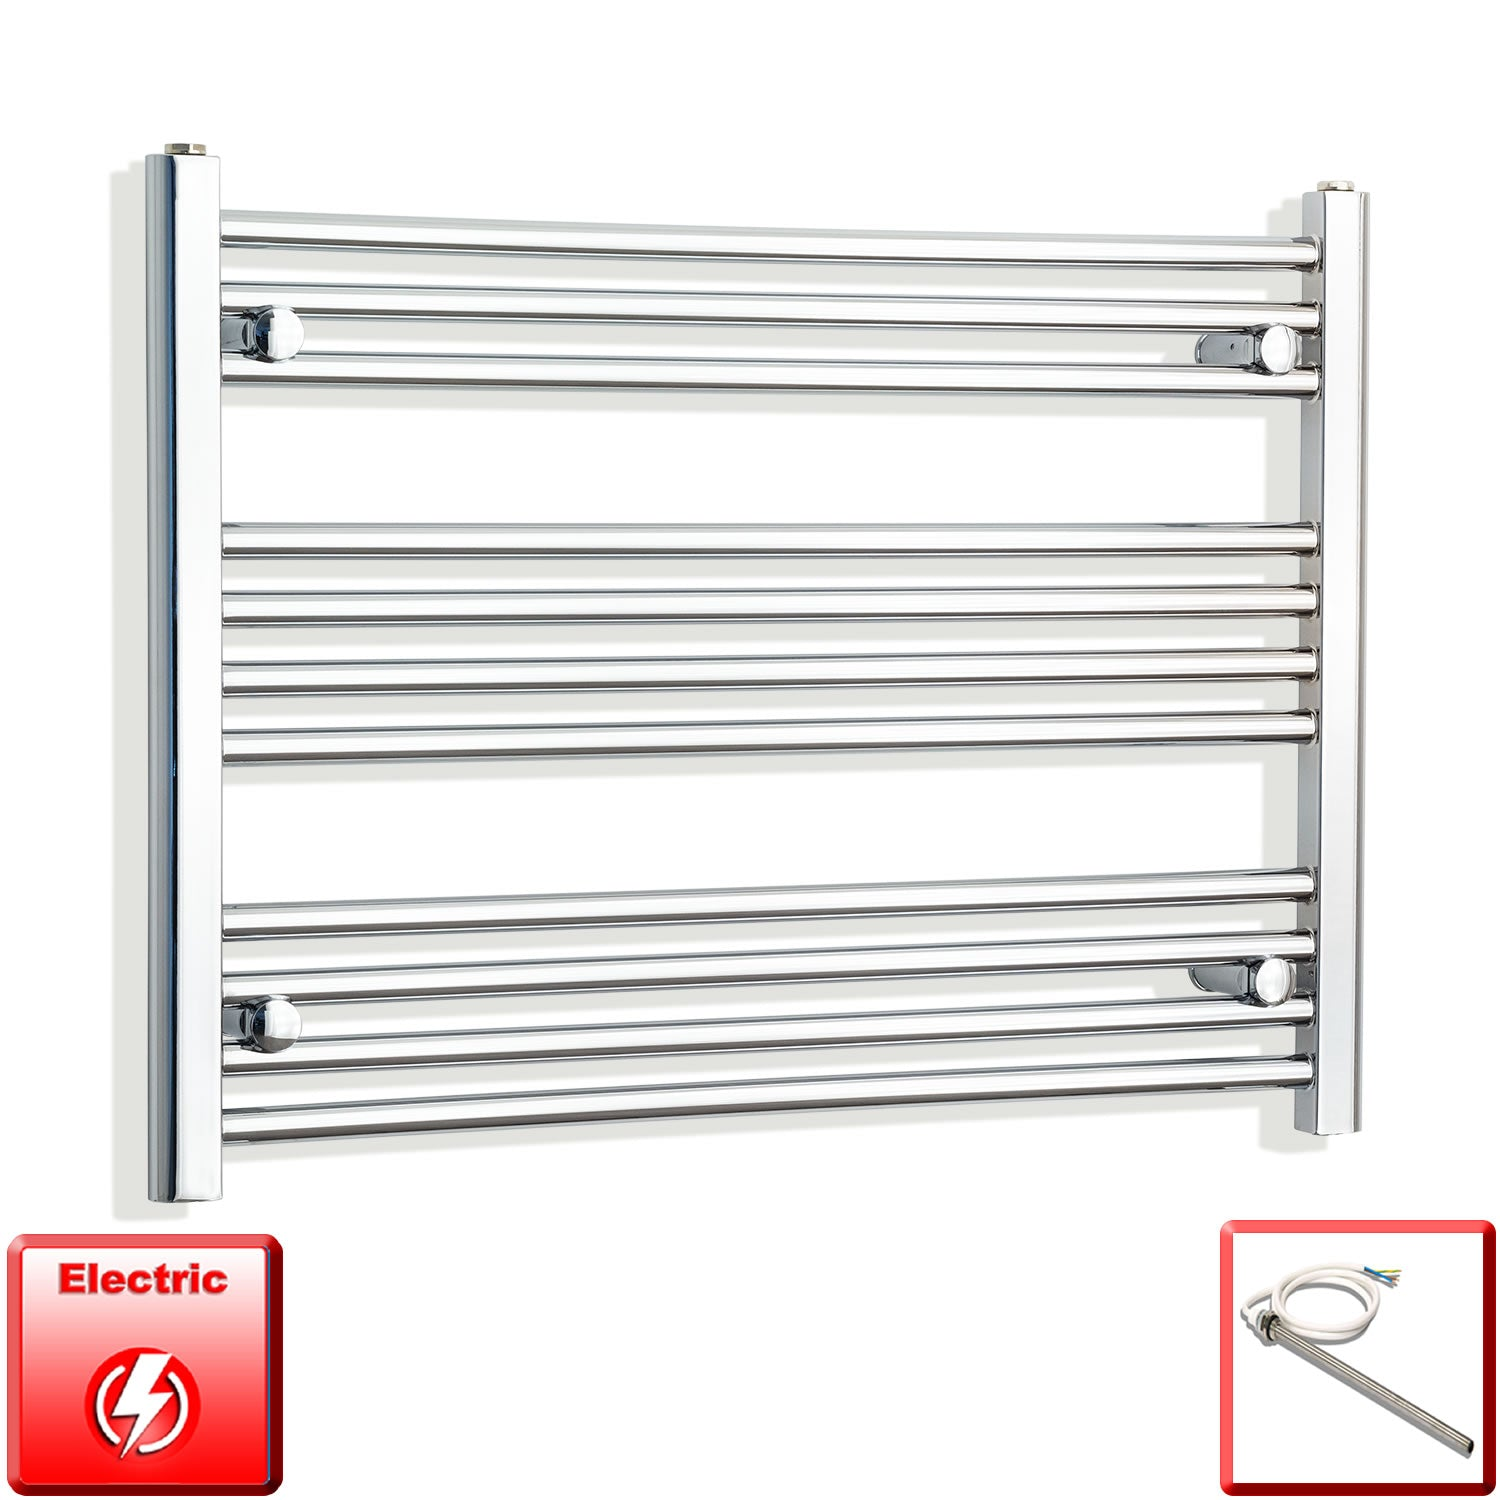 700mm Wide 600mm High Pre-Filled Chrome Electric Towel Rail Radiator With Single Heat Element